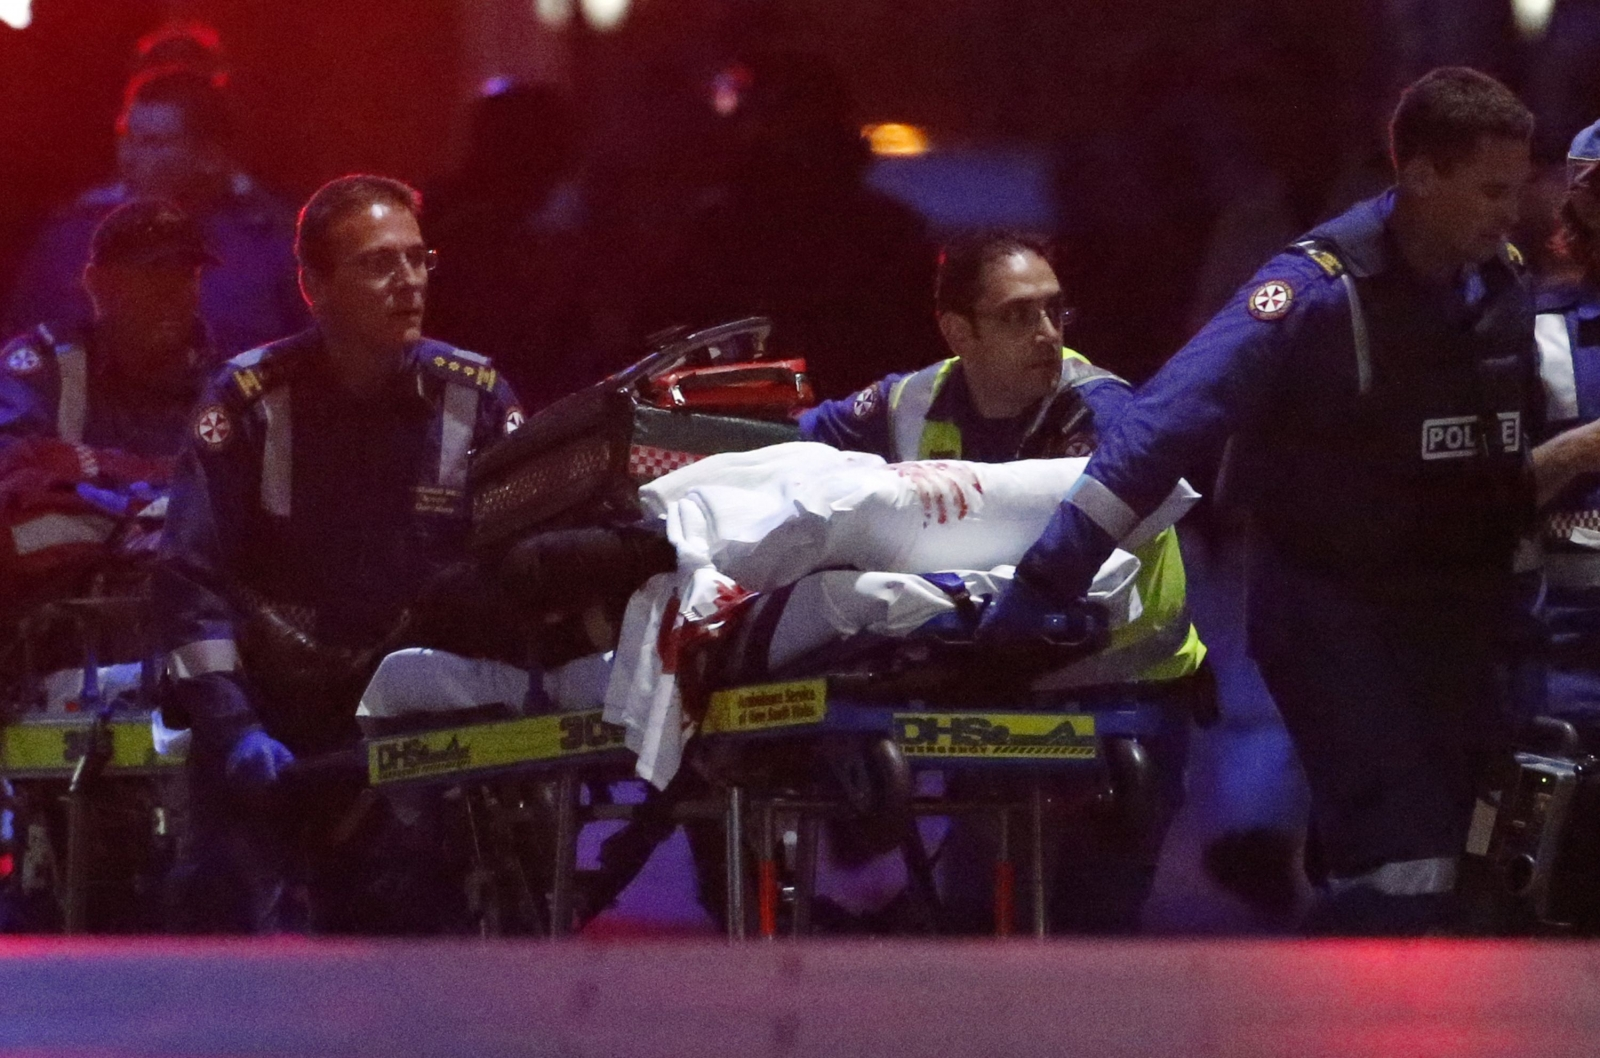 Sydney Siege: Police storm Lindt Cafe using live ammunition and end crisis